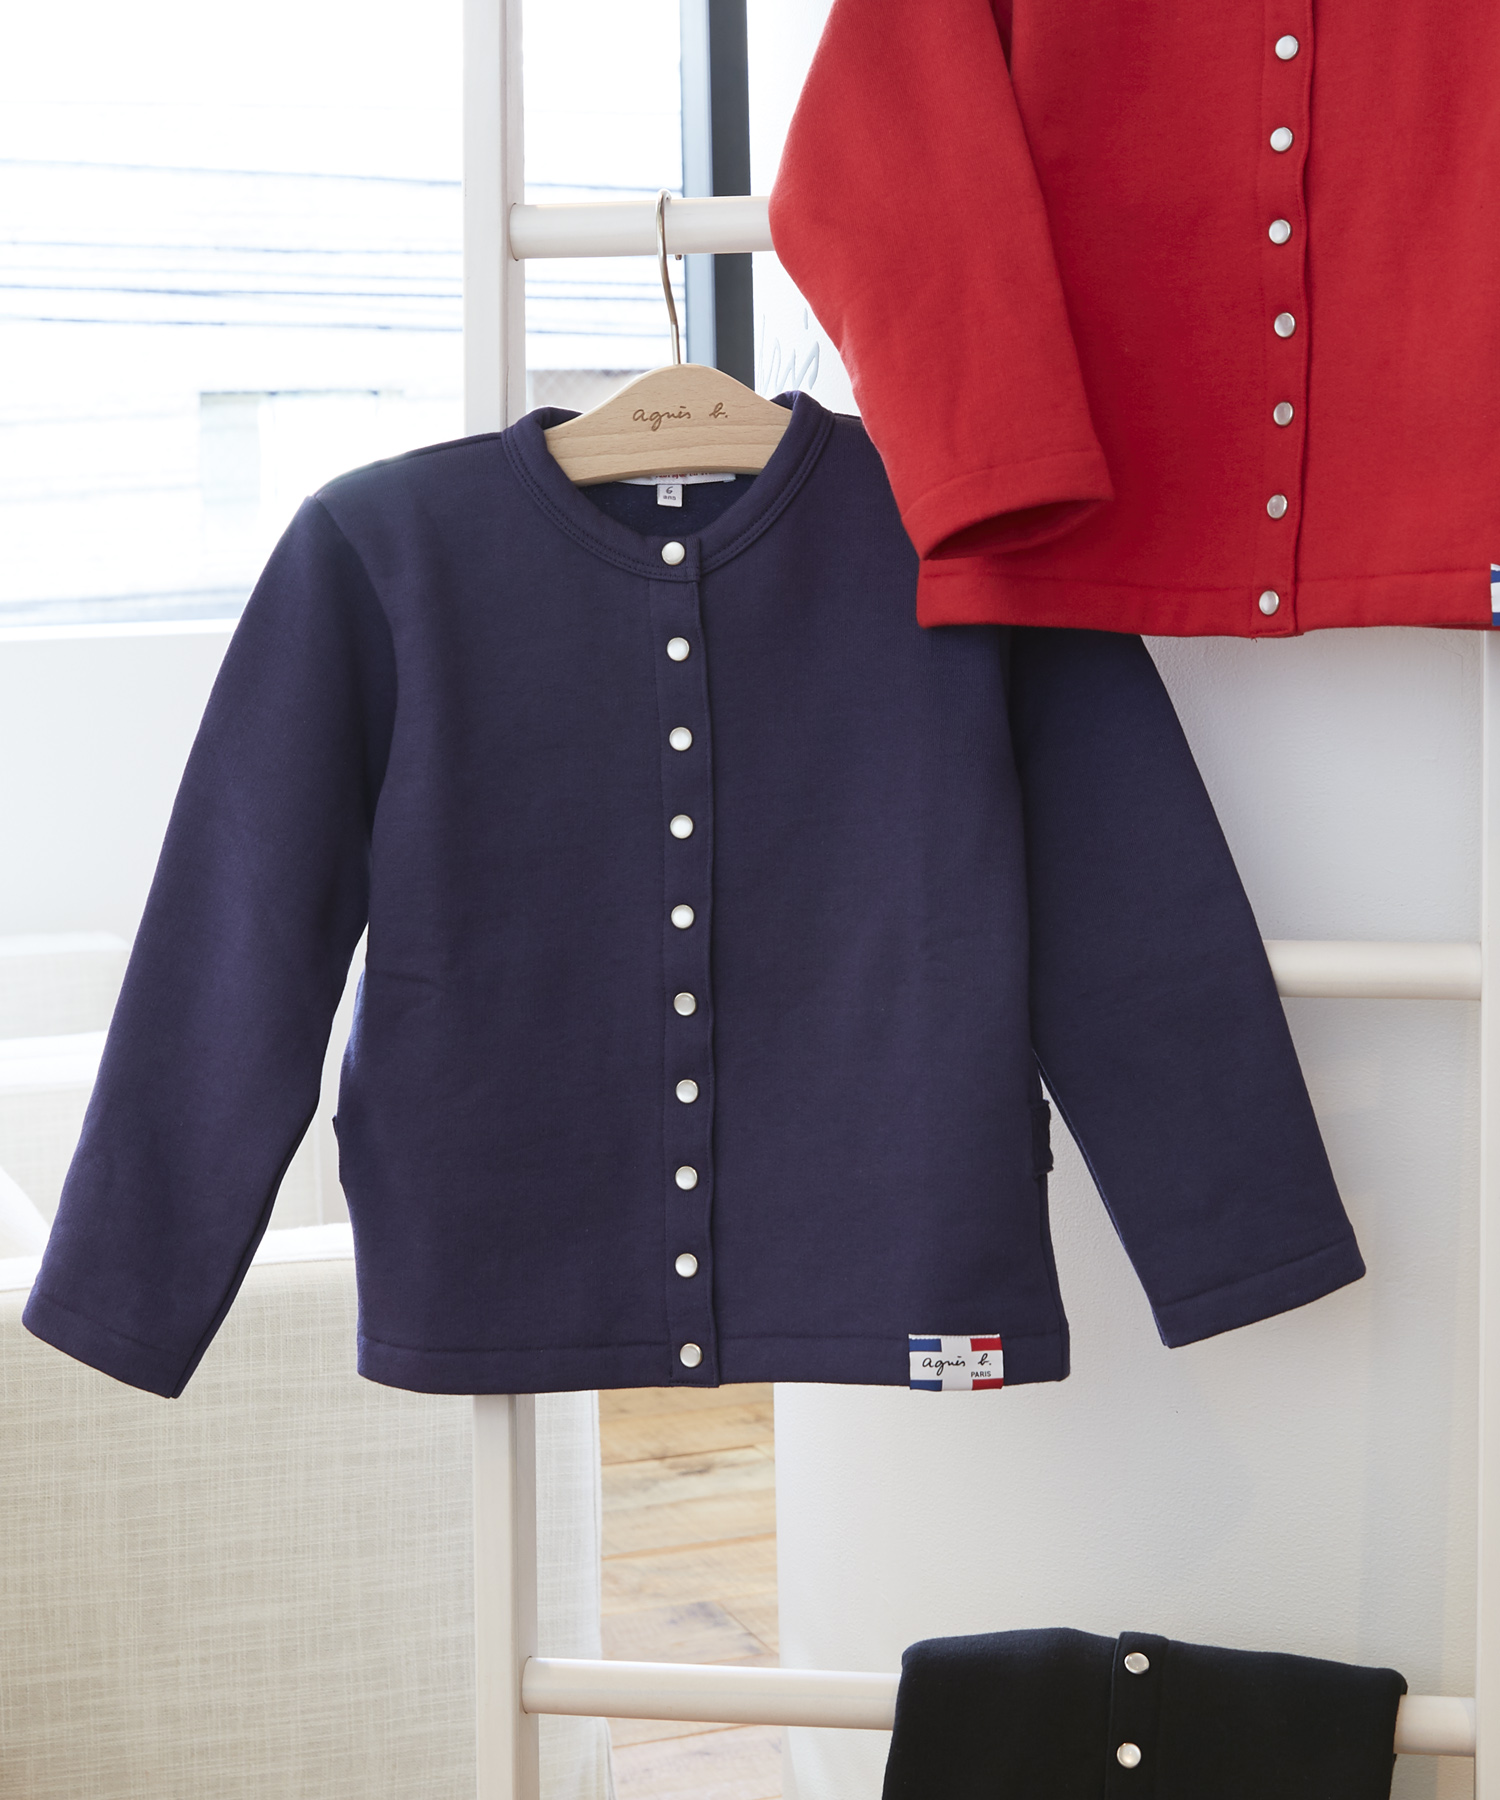 M001 E CARDIGAN キッズ カーディガンプレッション [Made in France]